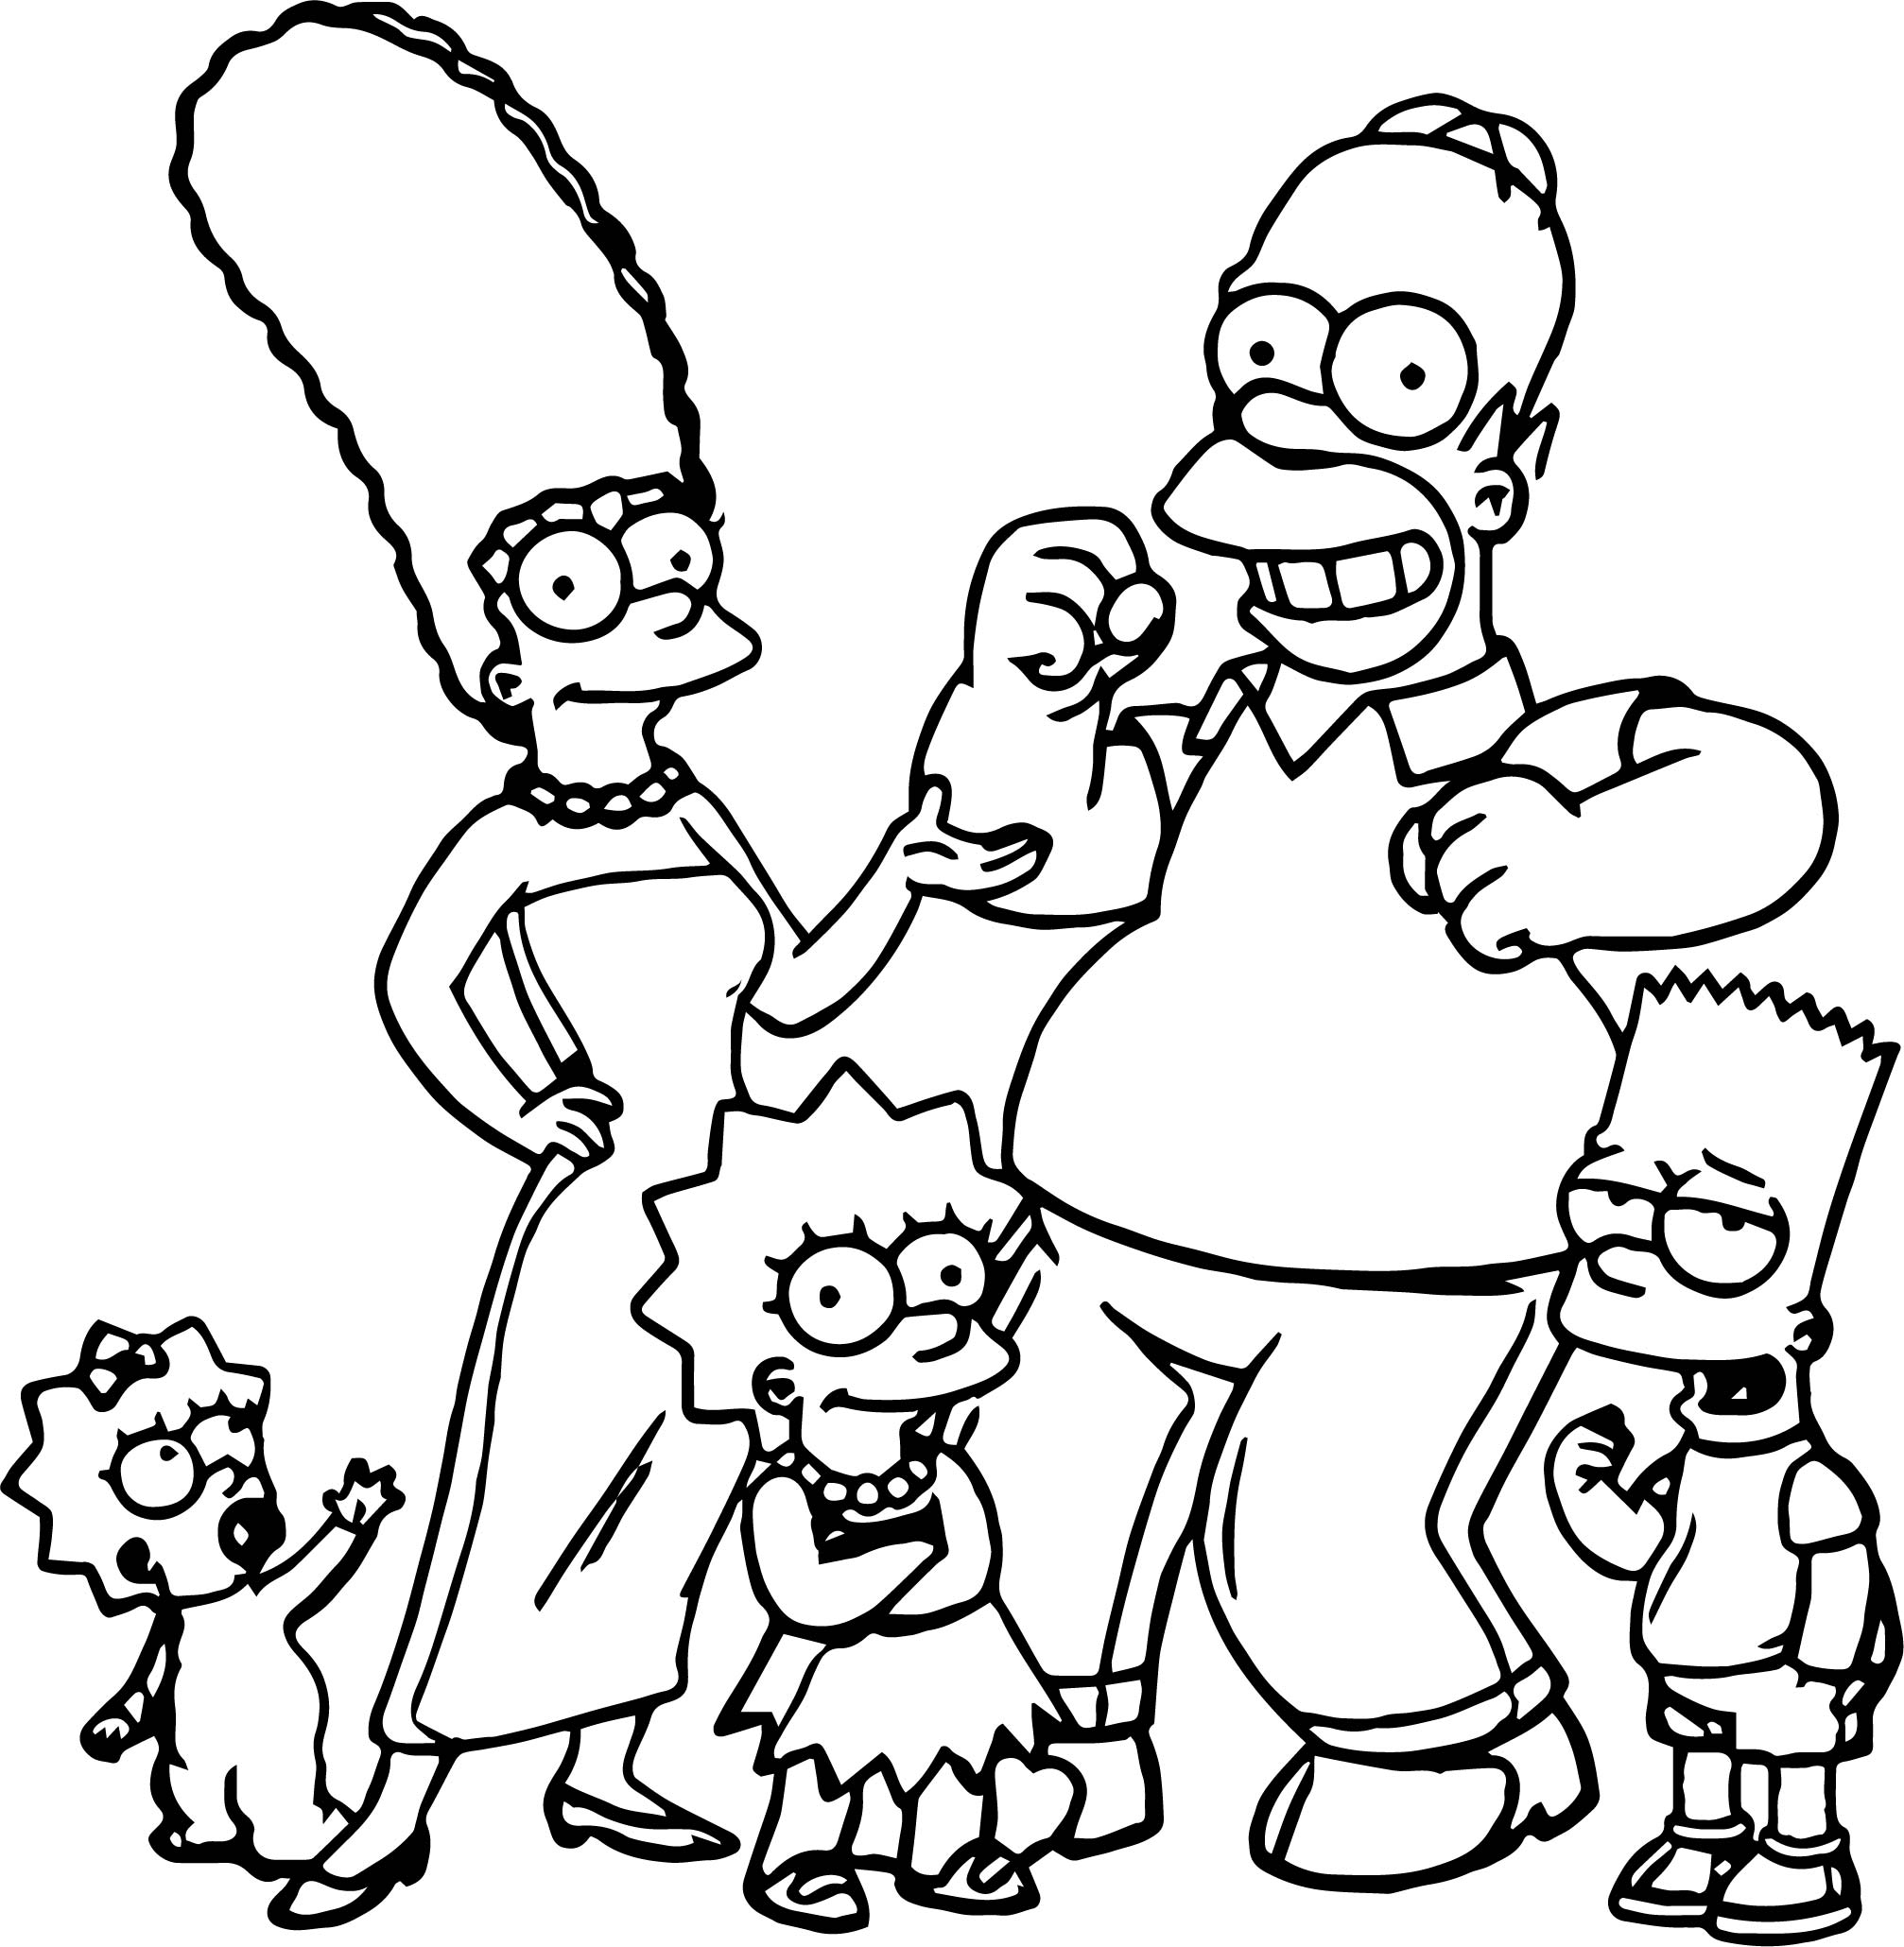 Simpson Coloring Pages - Best Image Of Coloring Page Revimage.Co